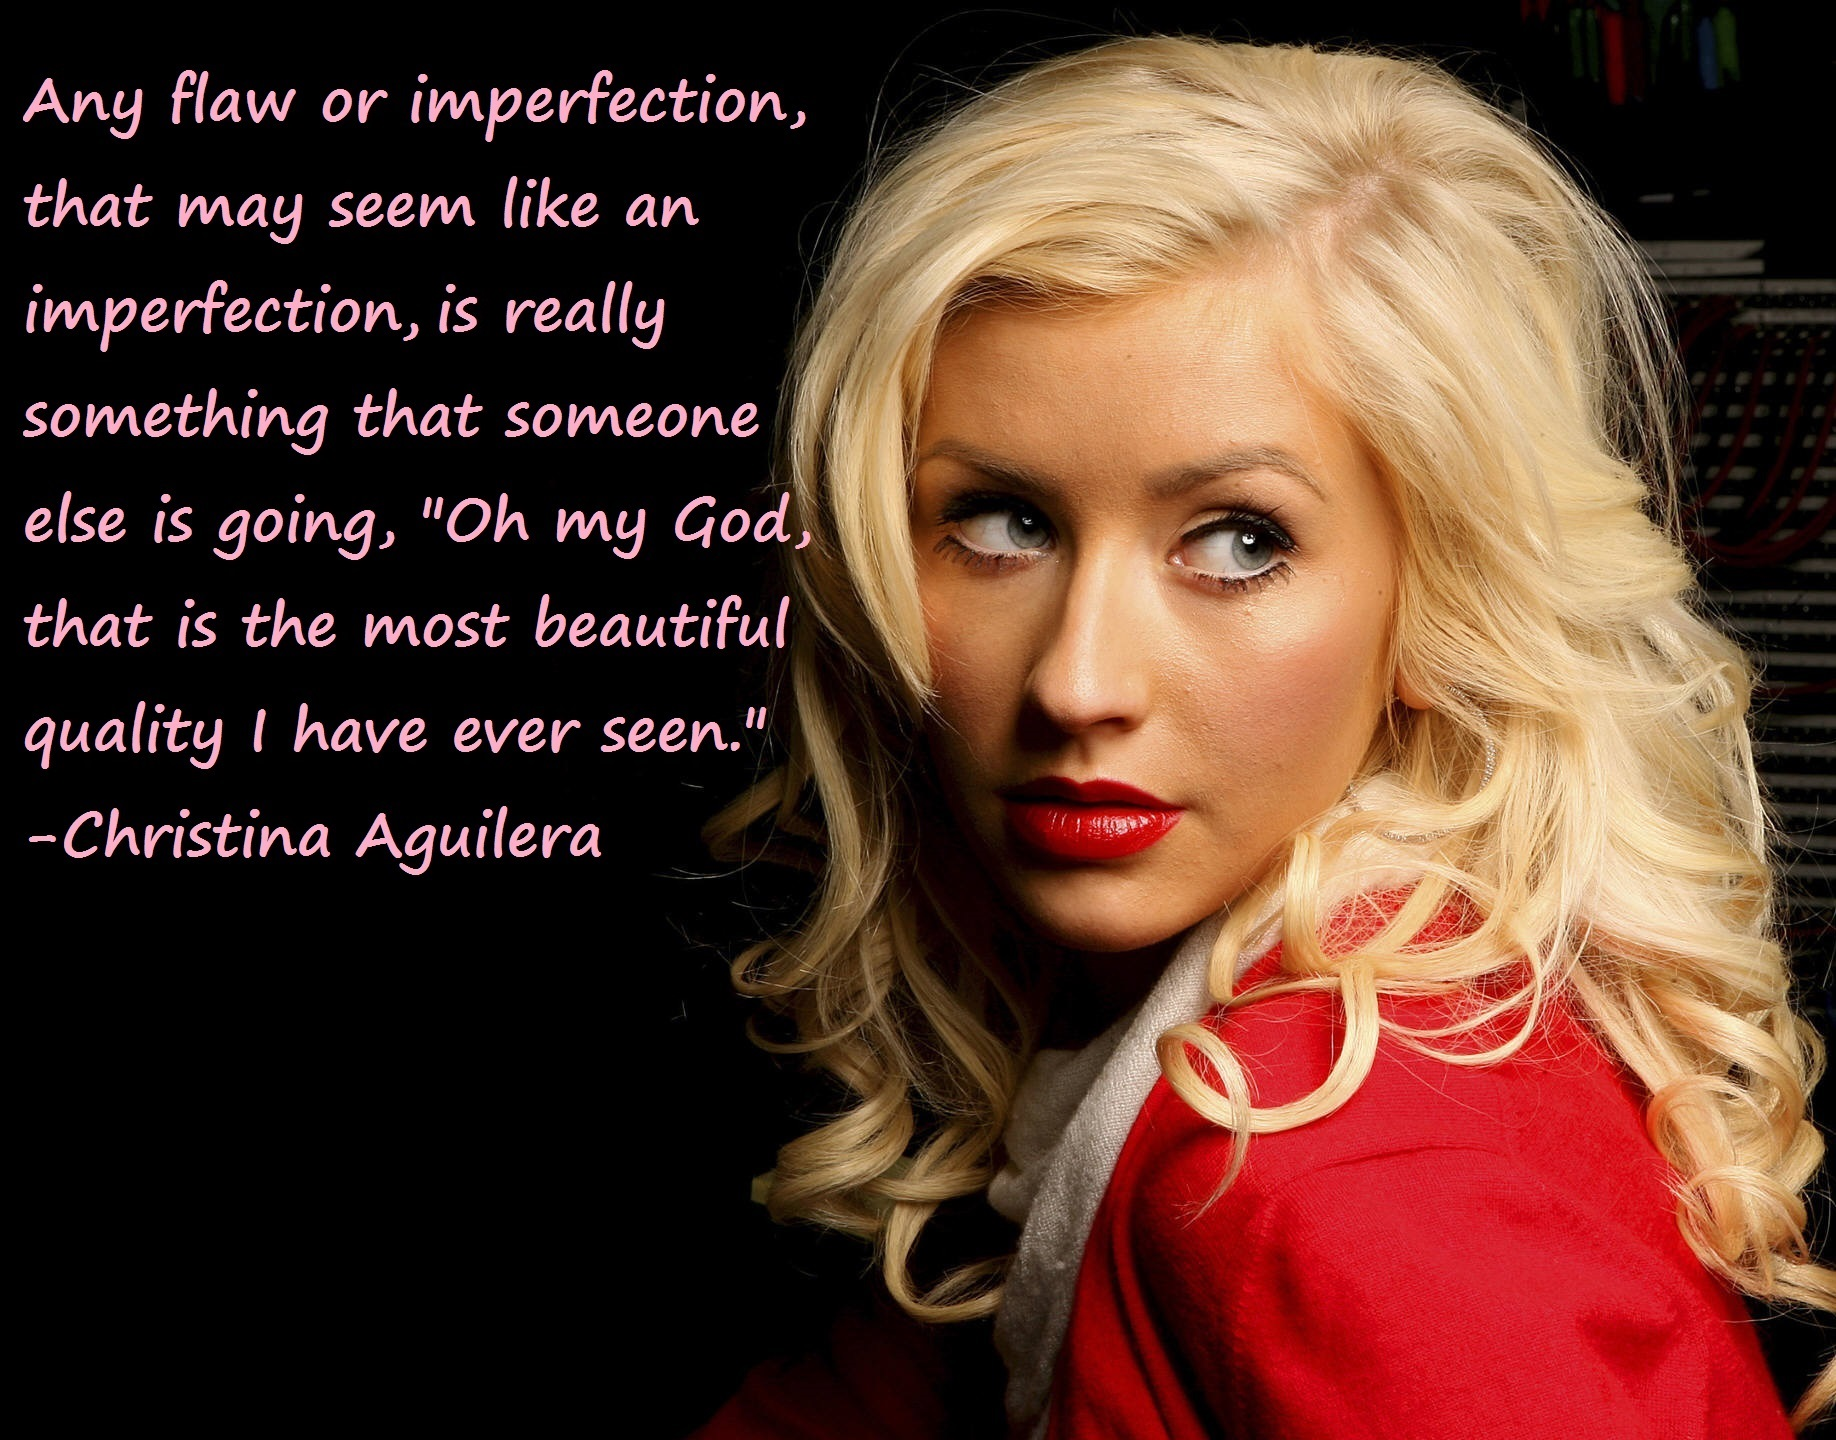 Christina Aguilera Song Quotes Quotesgram. Boyfriend Disrespect Quotes. Christmas Quotes Funny. Tattoo Quotes Melbourne. Famous Quotes Young Adults. Friday Quotes Party. Family Quotes Mark Twain. Tattoo Quotes Deep Meaning. Work For Justice Quotes